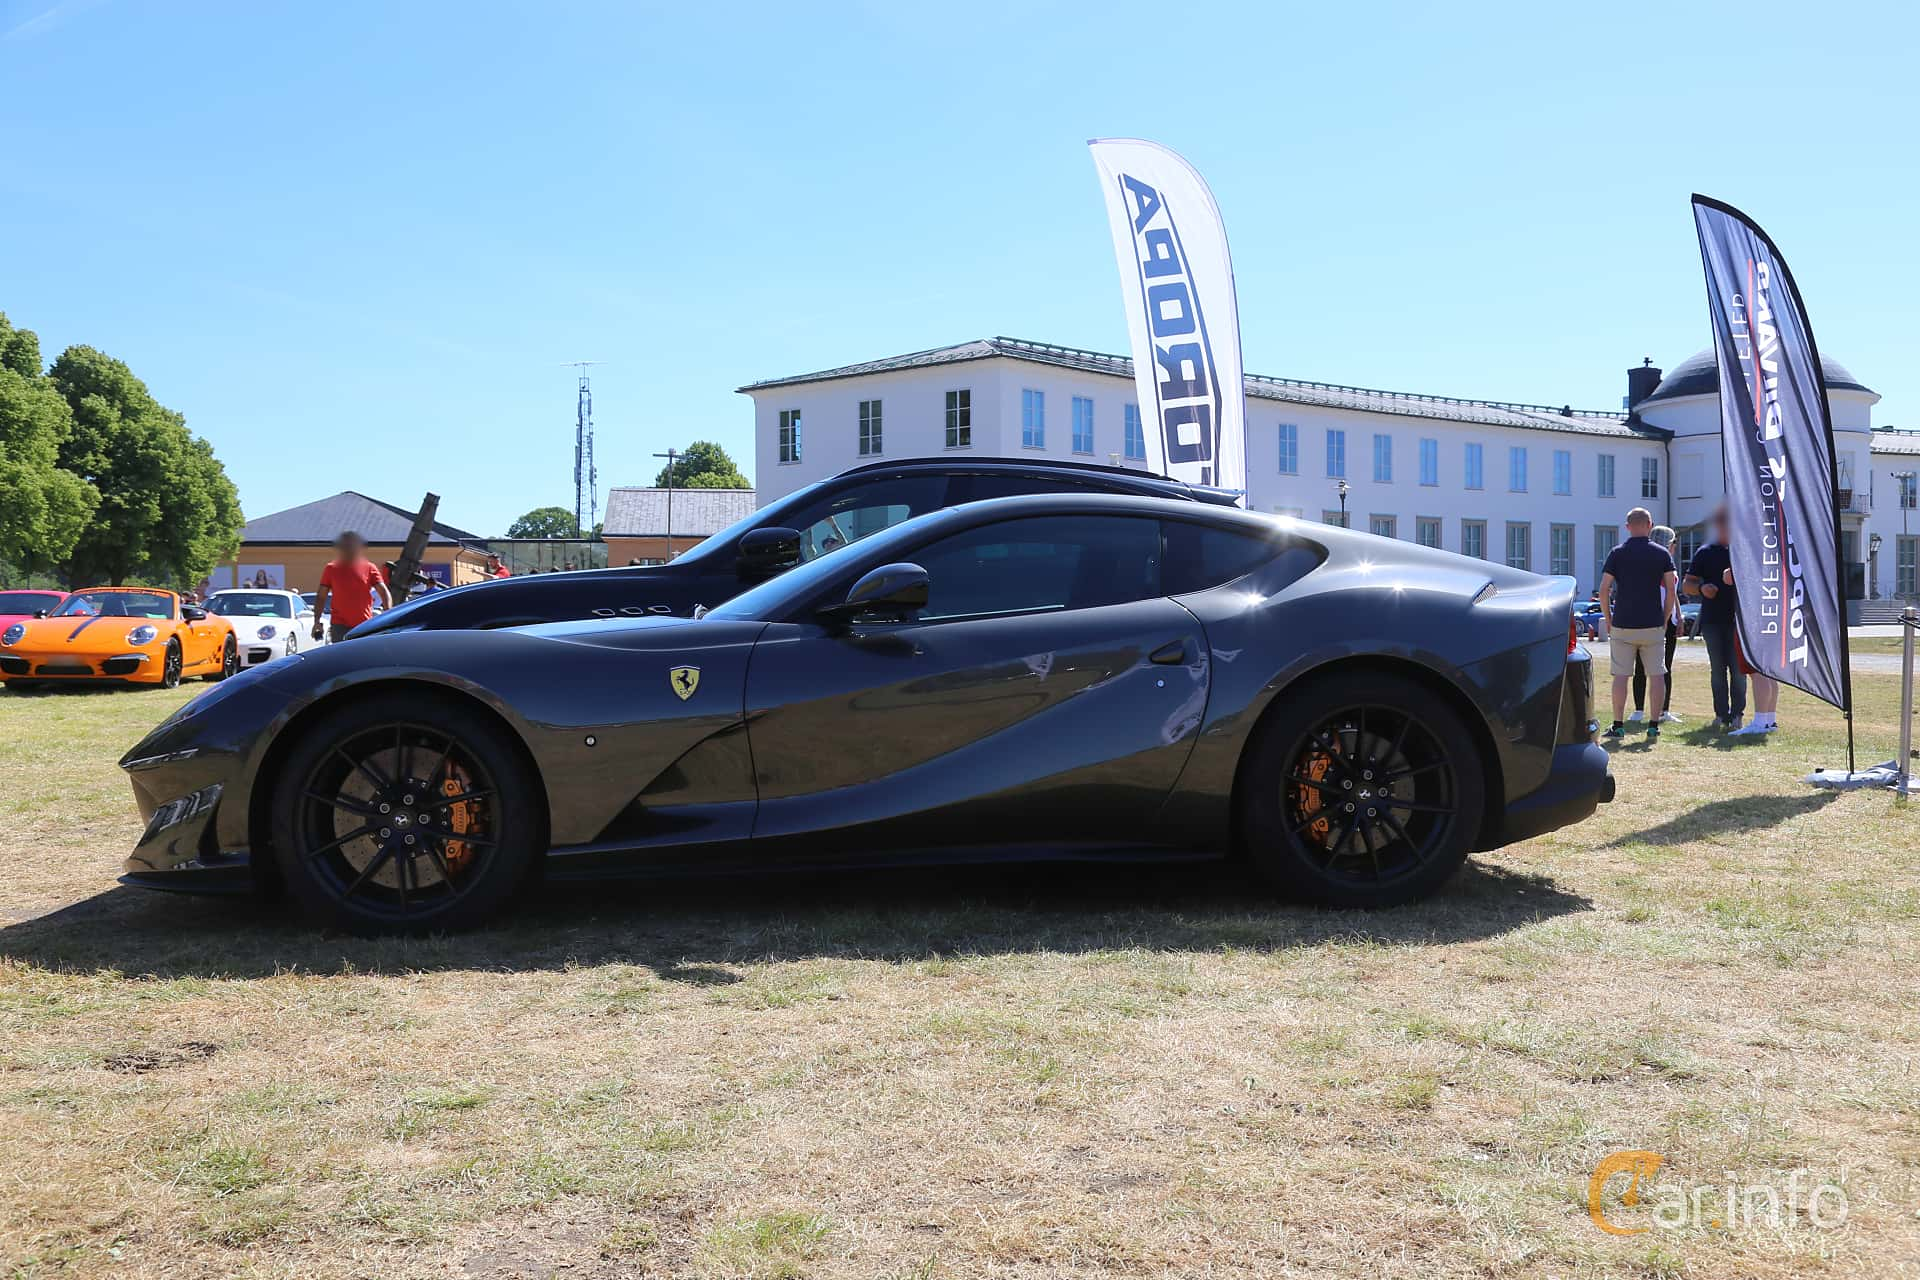 Ferrari 812 Superfast 6.5 V12 DCT, 800hp, 2018 at Cars and Coffee Stockholm 2018